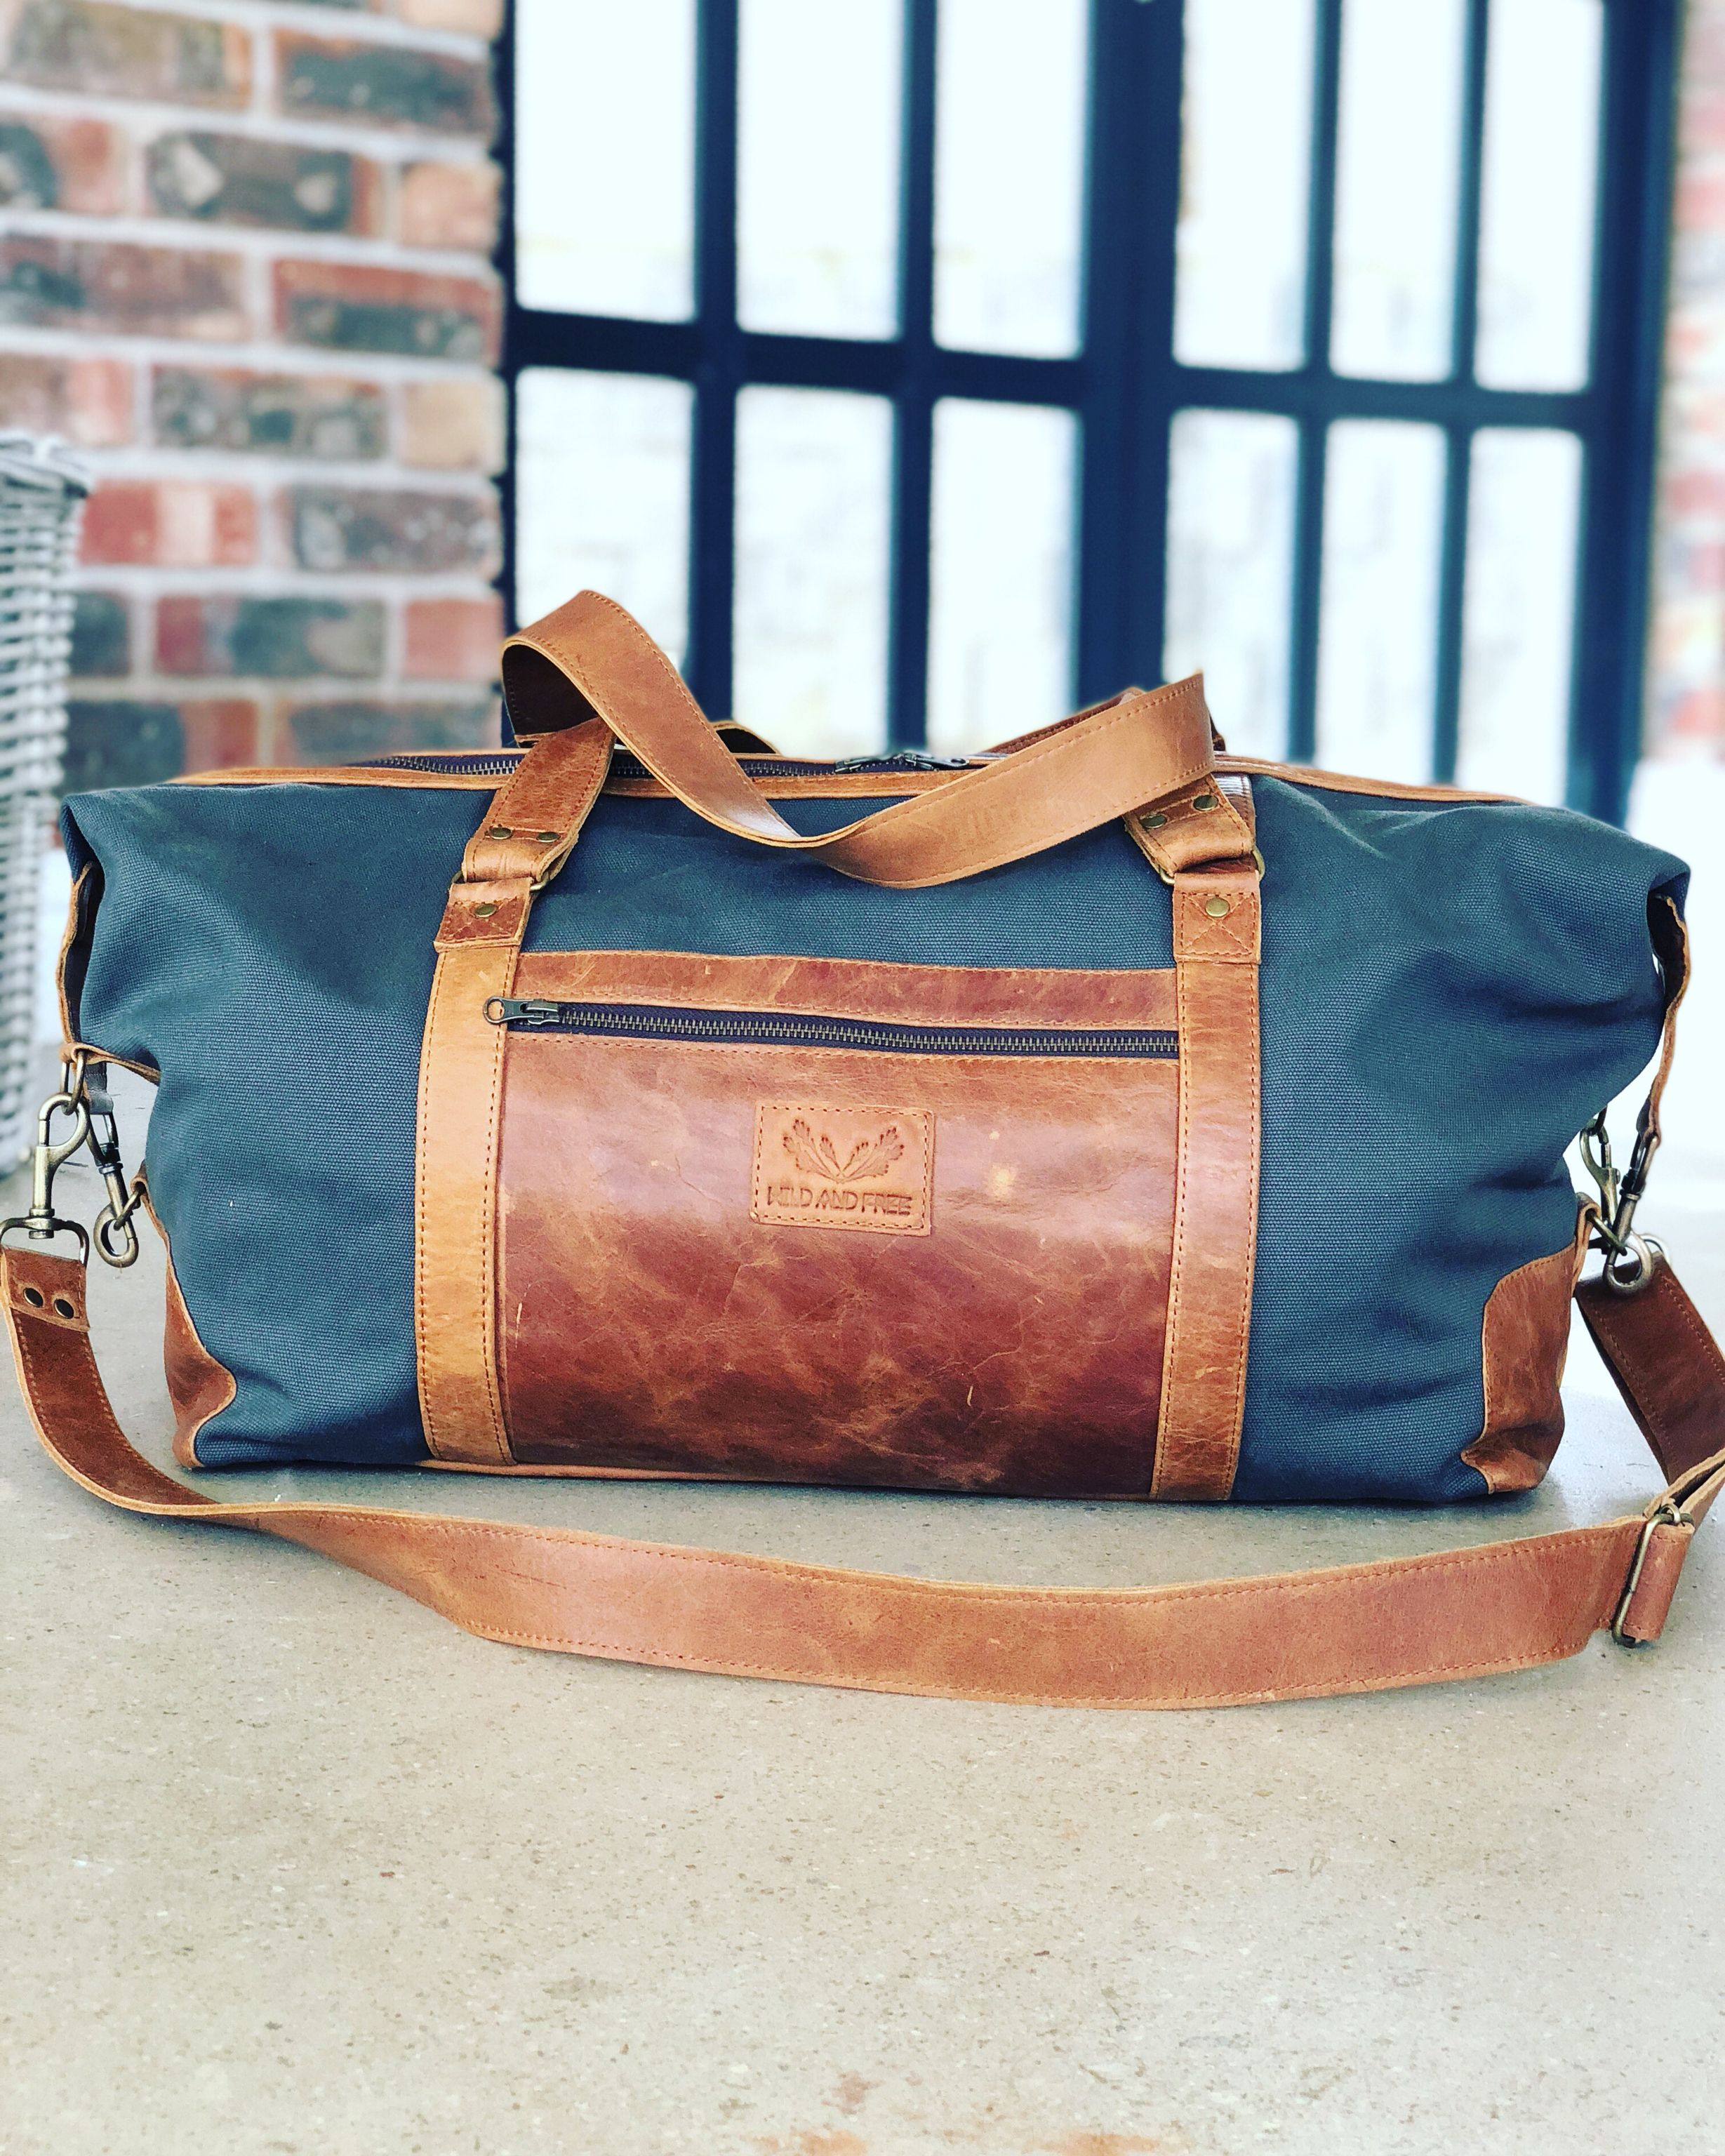 Adventure Canvas and Leather Duffel Bag. Find this Pin and more on Wild    Free ... eded50d6e3c99